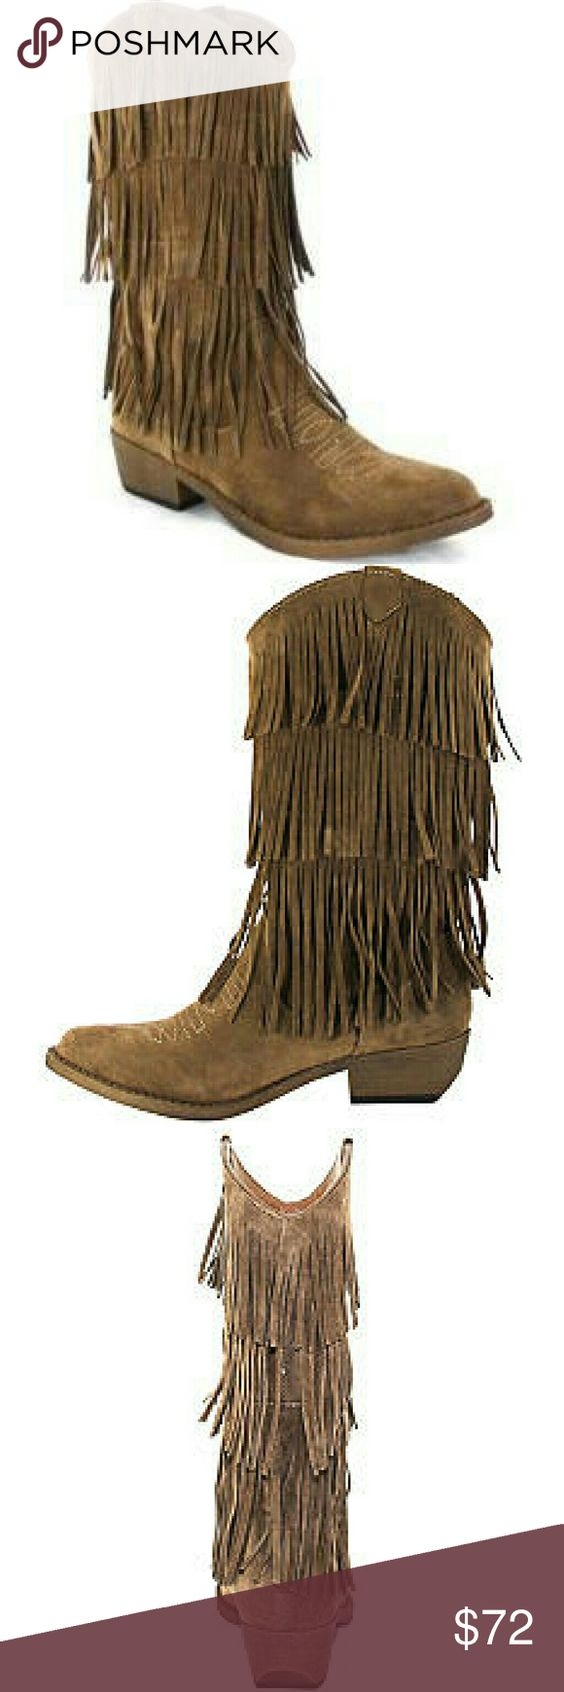 Taupe Suede Fringe Boots This low heeled fringed boot is sure to turn heads! Crafted with a Western-inspired silhouette, it's ideal for pairing with any outfit.  Under 1-in. platform; 1.5-in. heel; 9.75-in. shaft height; 13.75-in. calf circumference Pull-on Pointed toe Padded insole Upper: faux suede; Lining: faux suede Wipe with Damp Cloth Imported starlight footwear  Shoes Ankle Boots & Booties